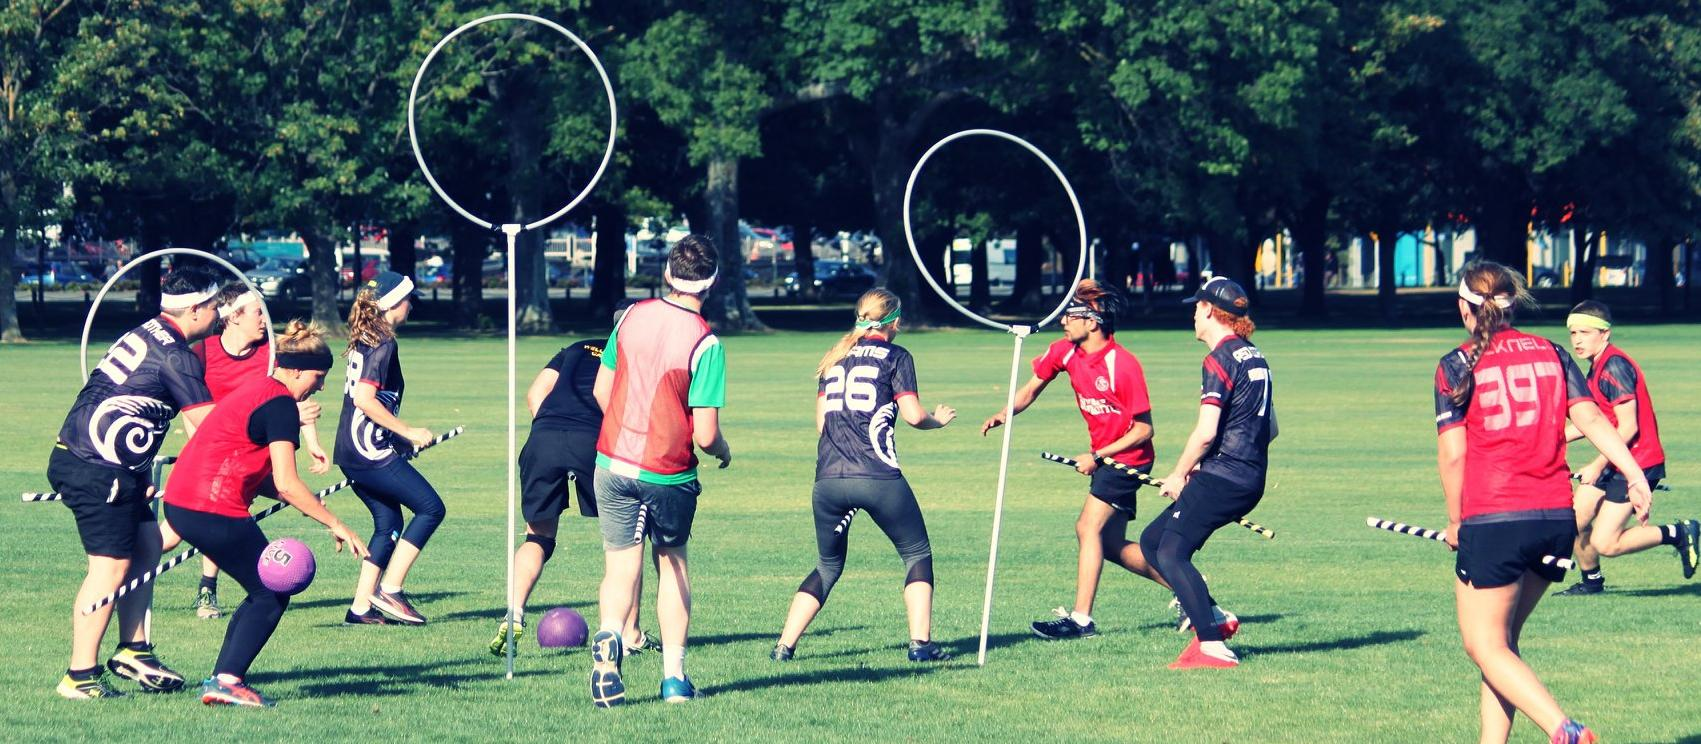 A game of muggle quidditch